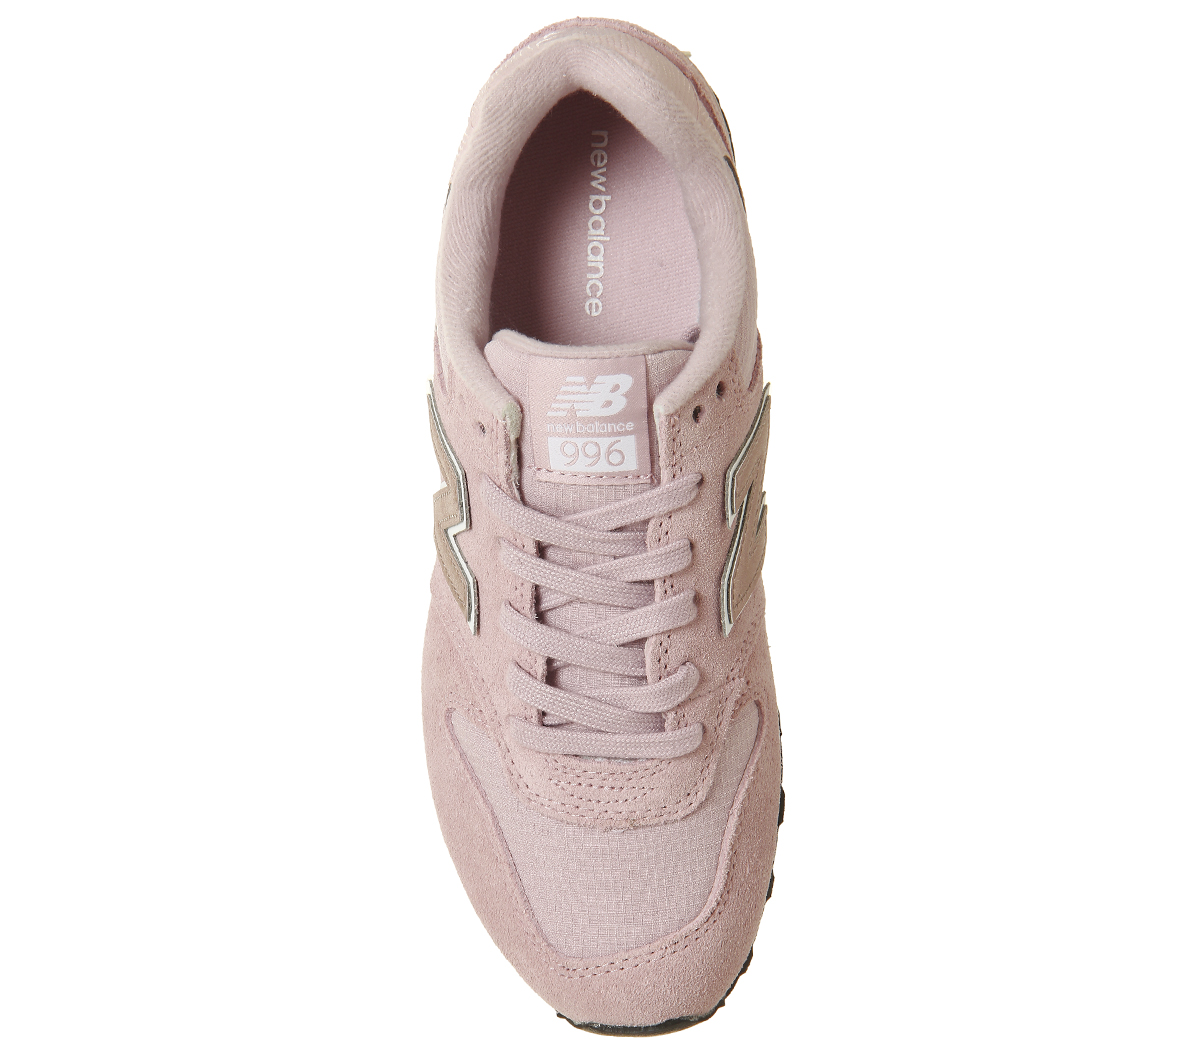 Damenschuhe New NEW Balance Wr996 Trainers PINK NEW New Trainers Schuhes db90a4